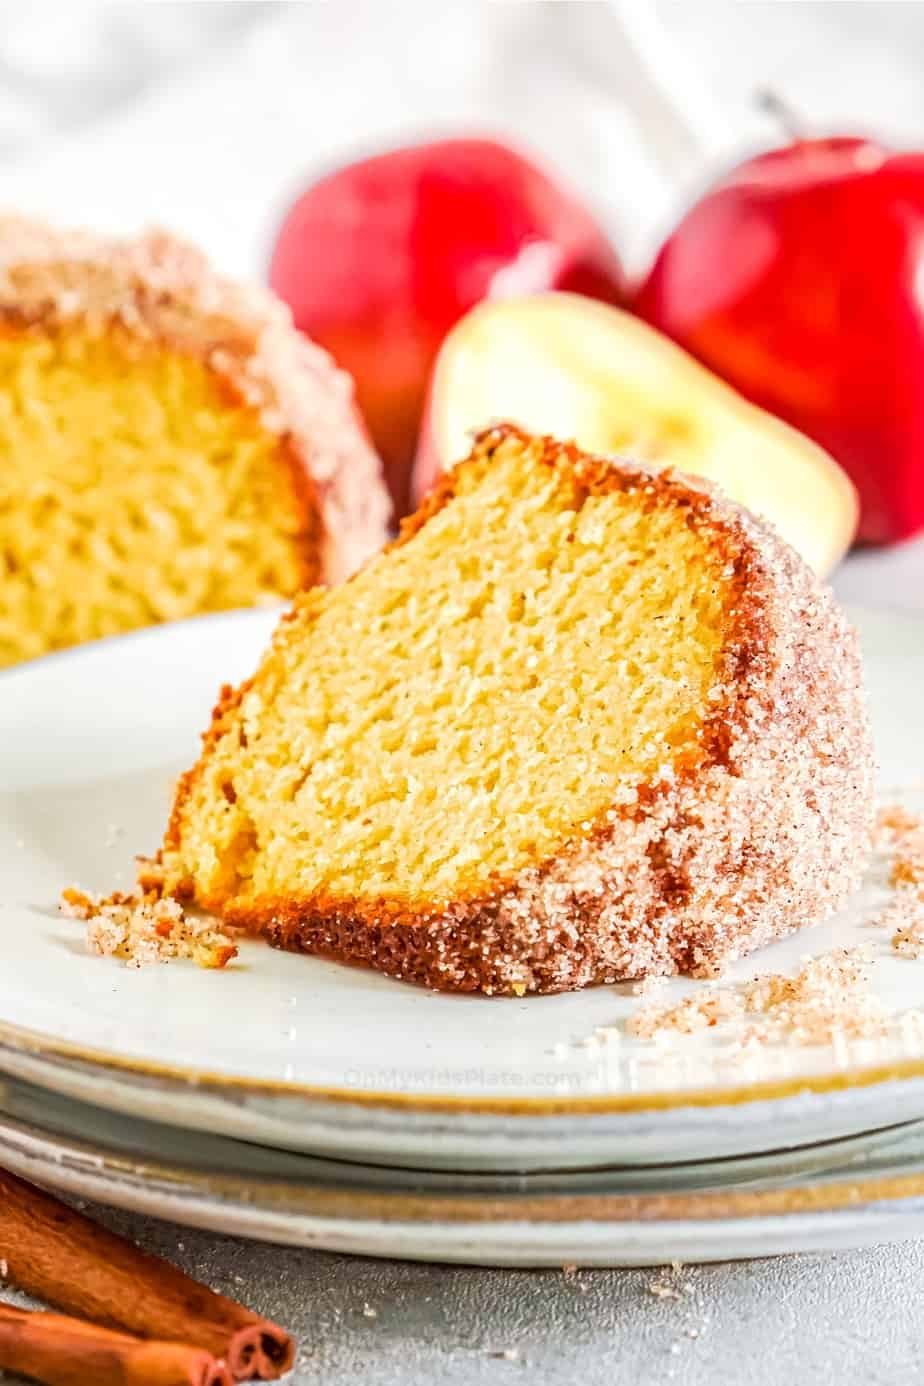 Slice of cider doughnut cake with on a plate with apples in the background